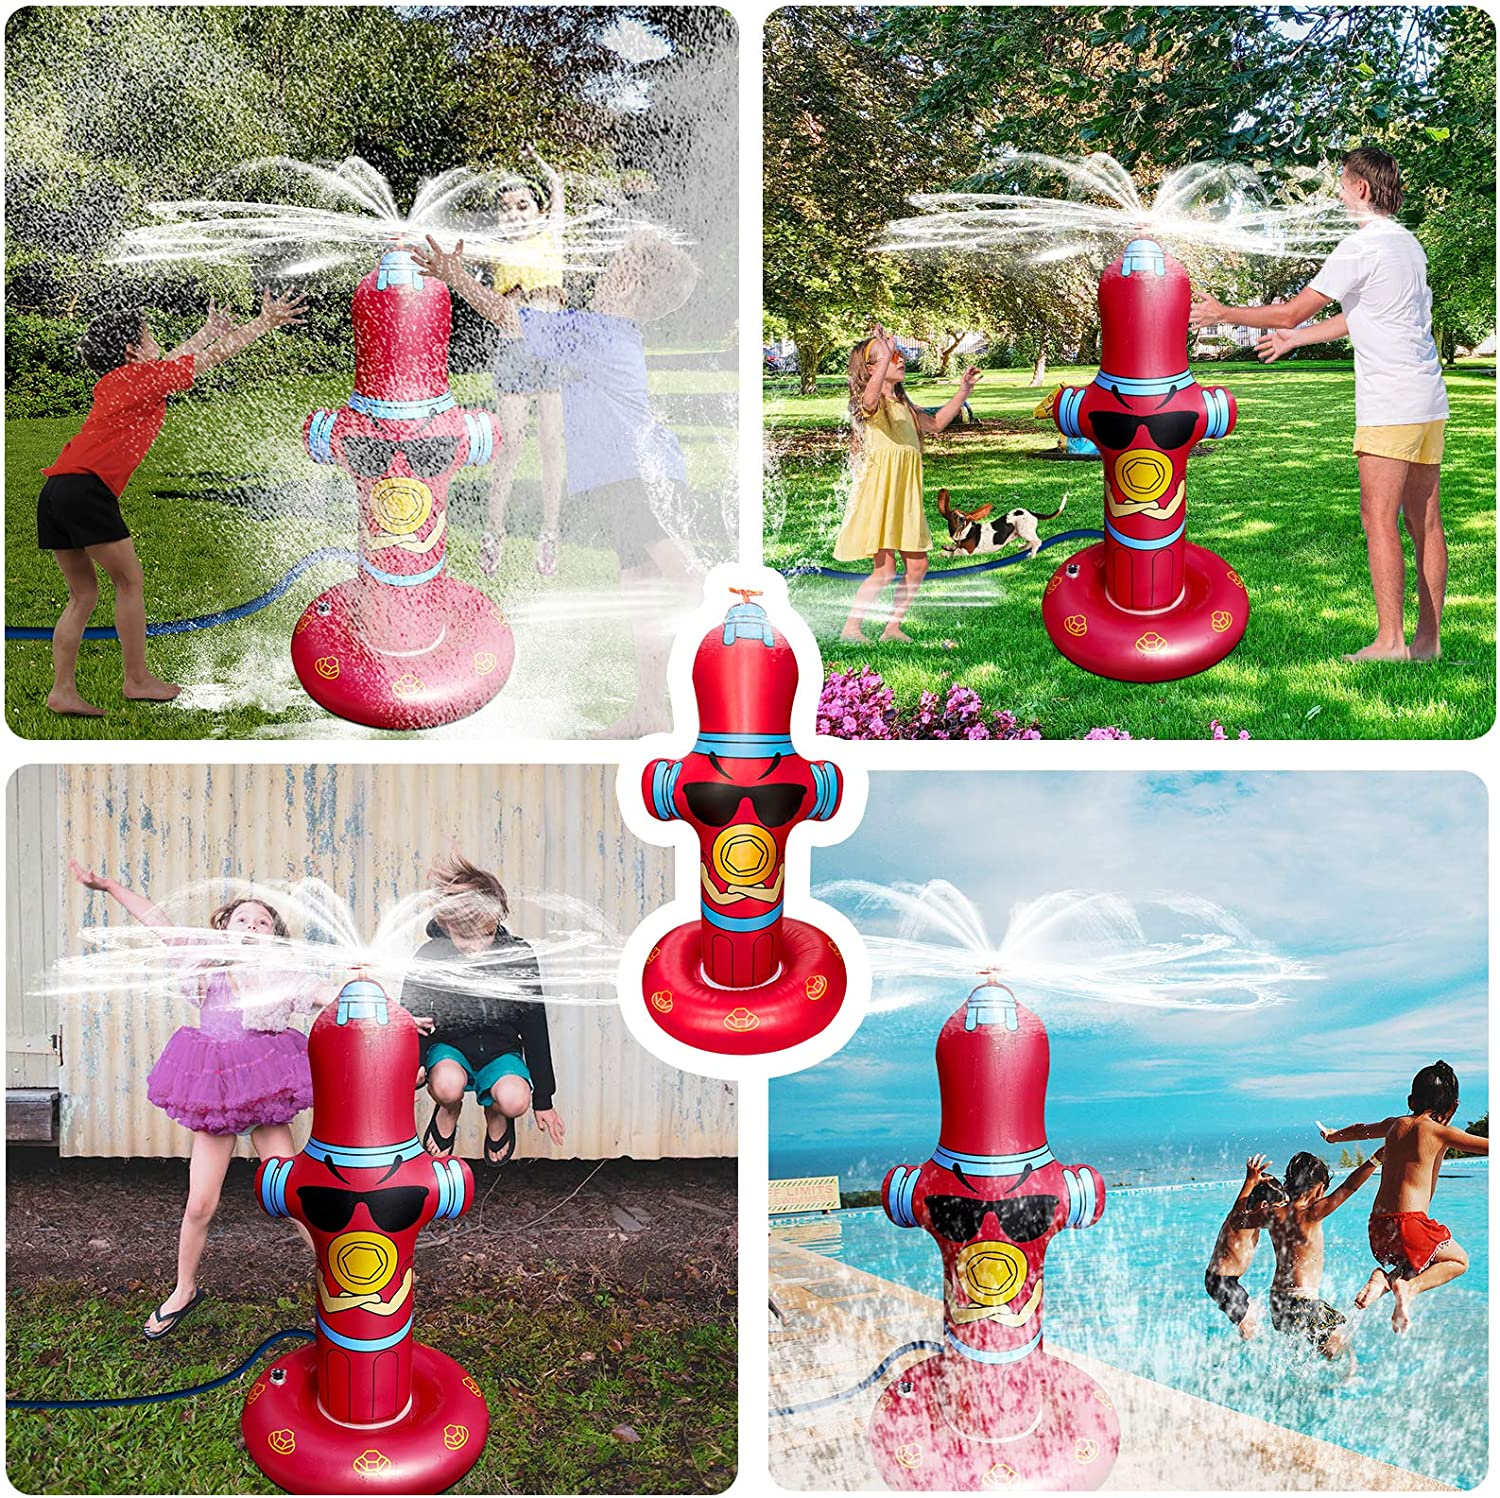 Vimite Water Sprinkler for Kids,Fire Hydrant Kids Sprinkler for Yard,50 Inflatable Sprinkler,360/° Spray Toddler Sprinkler with Eco-Friendly PVC Material Summer Outdoor Toys for Toddlers Big Kids